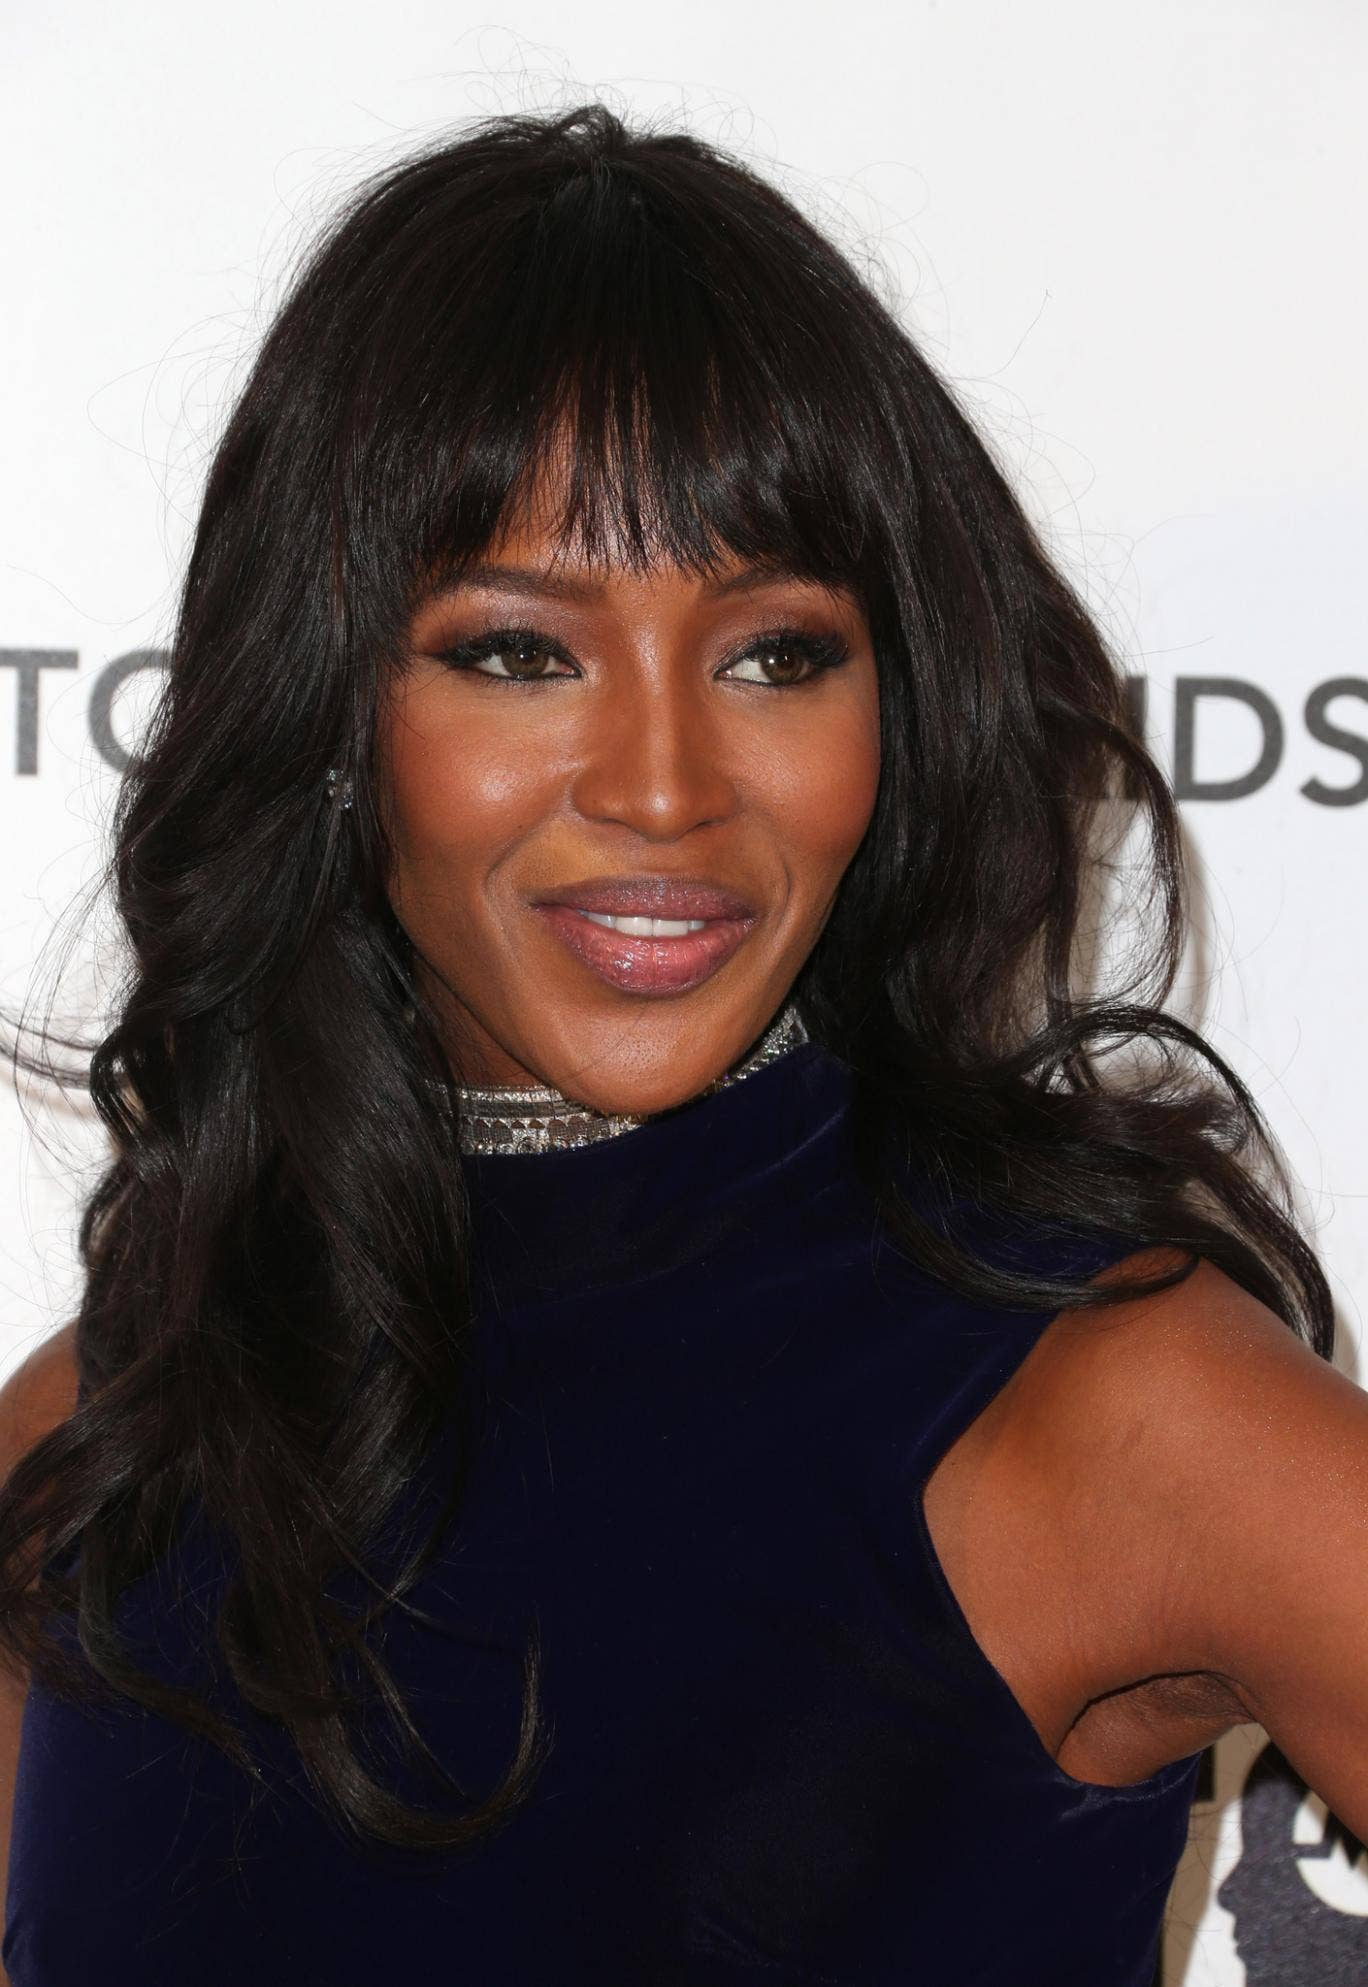 Naomi Campbell to front a new model search called The Face